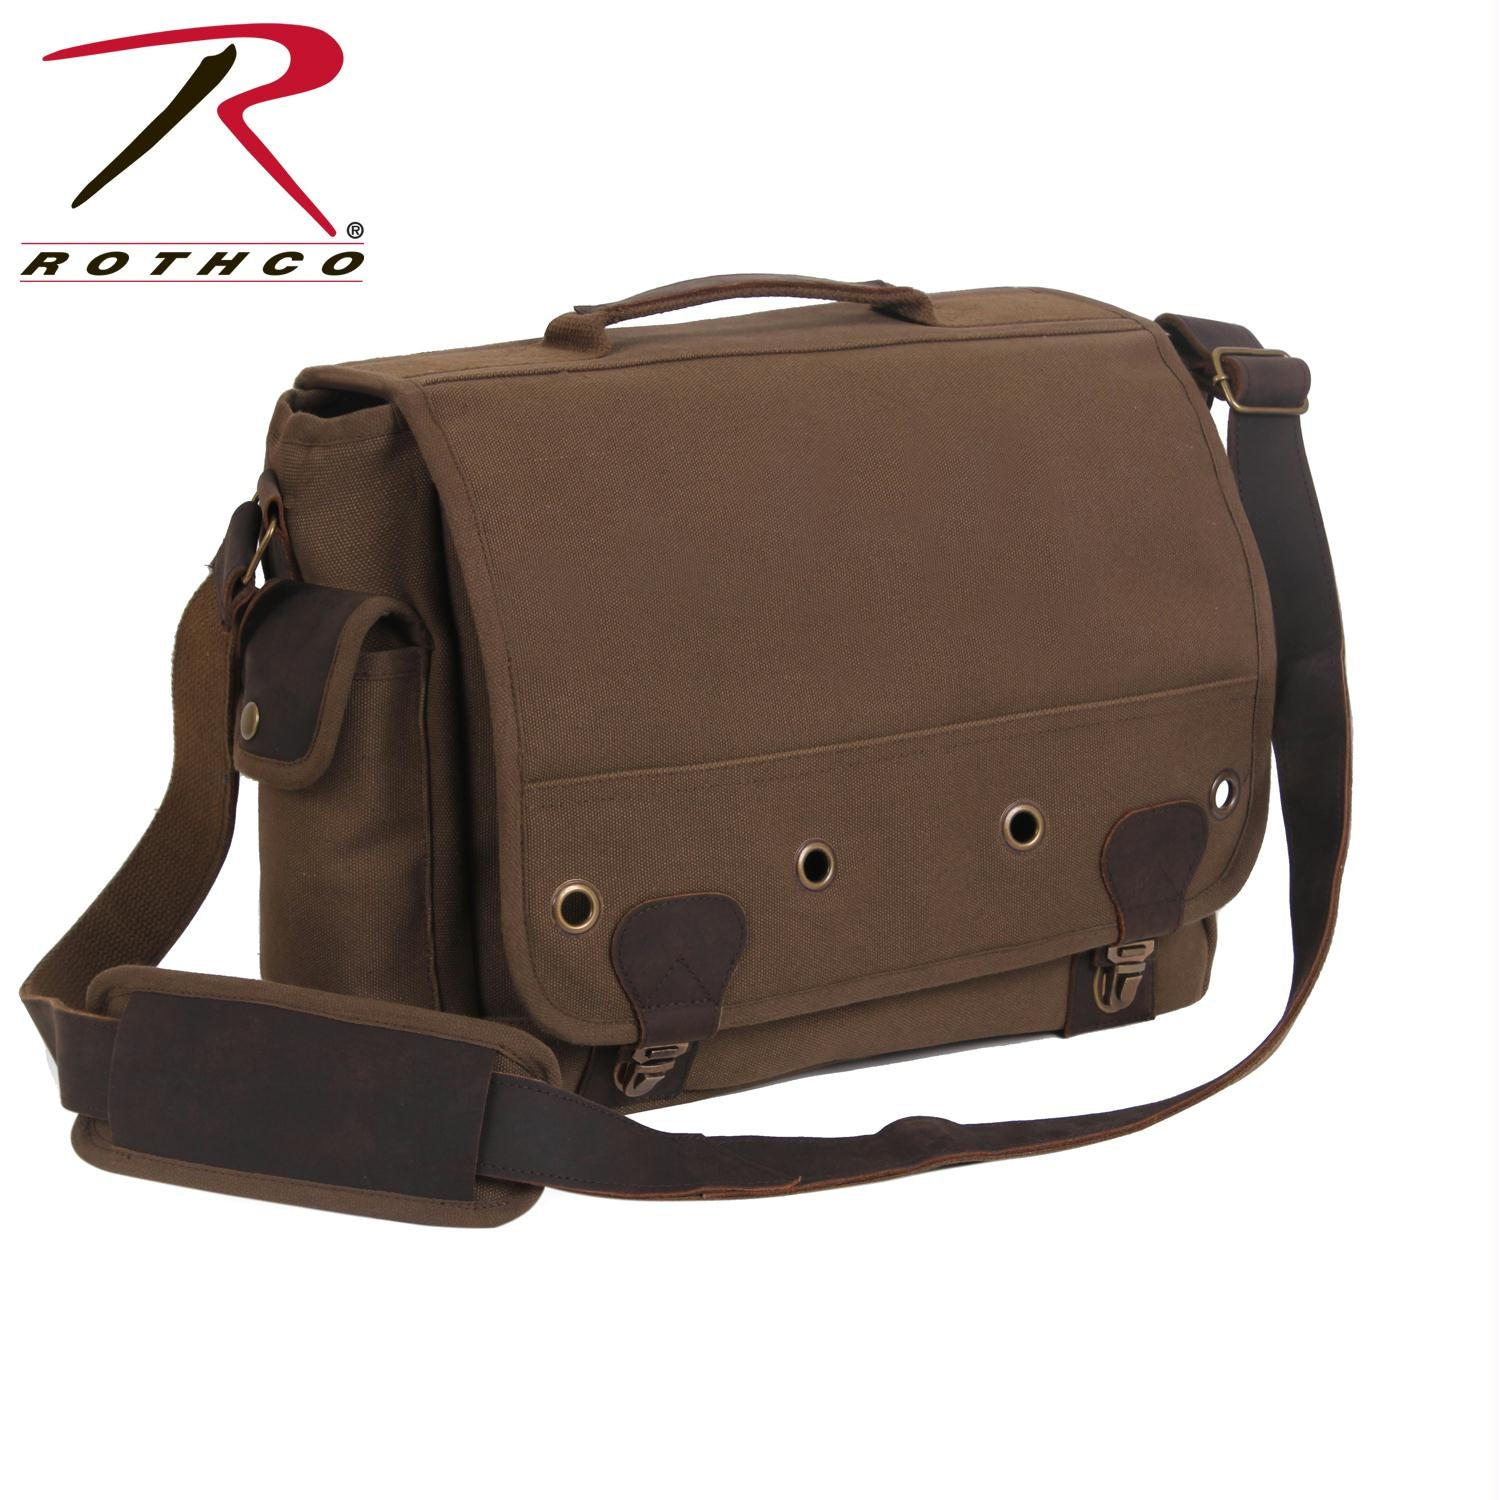 Rothco Canvas Trailblazer Laptop Bag - Earth Brown